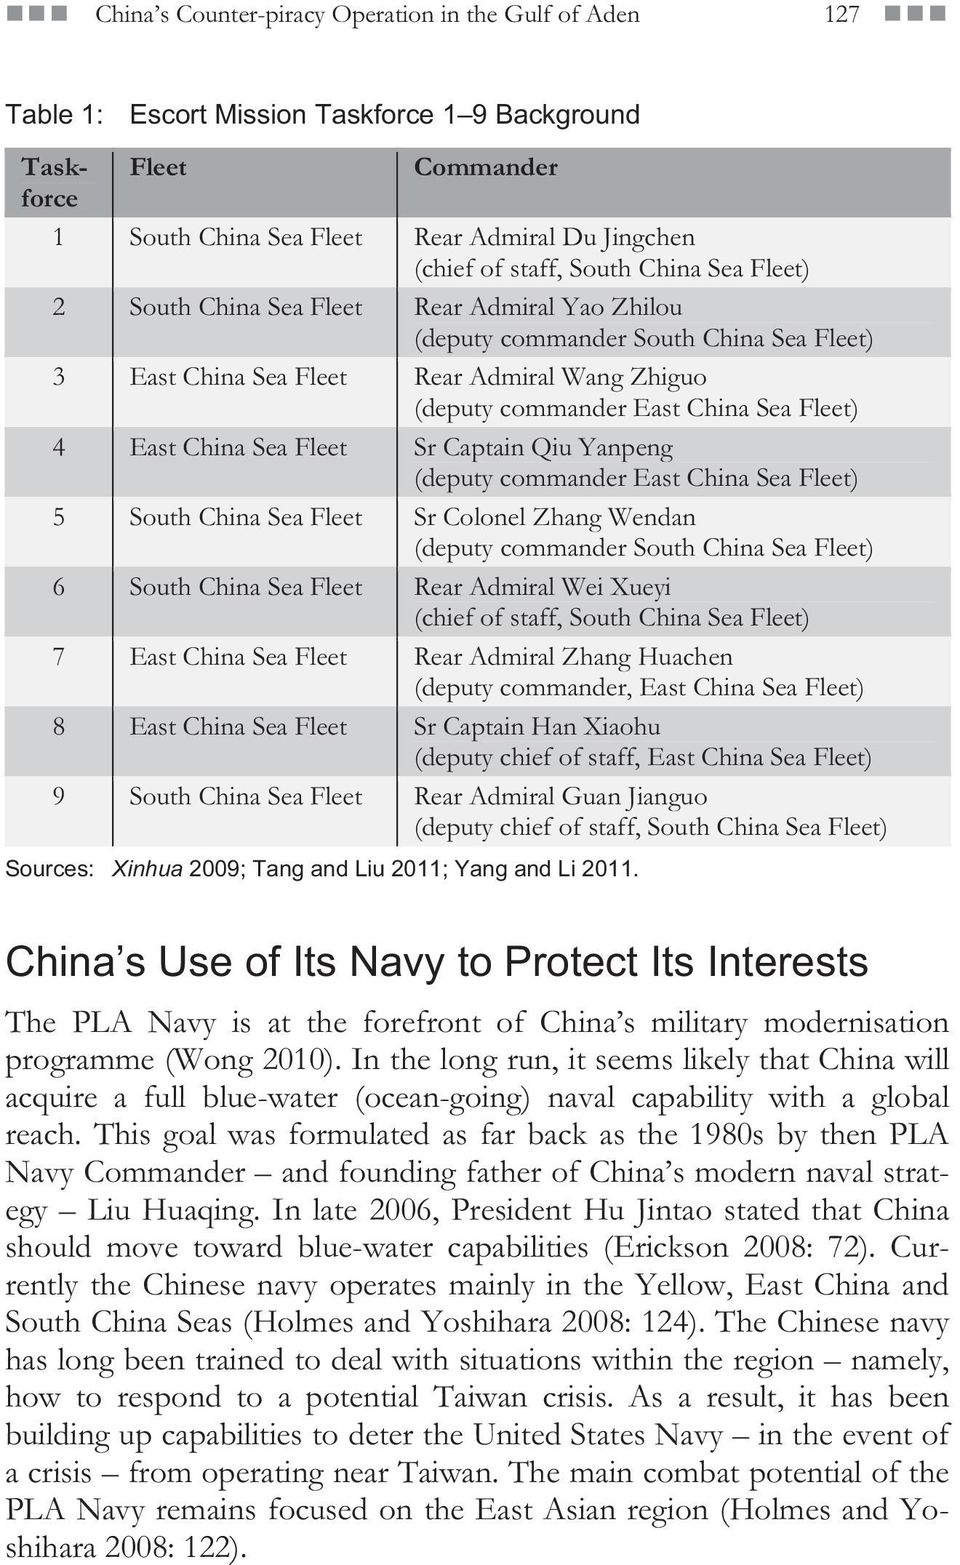 4 East China Sea Fleet Sr Captain Qiu Yanpeng (deputy commander East China Sea Fleet) 5 South China Sea Fleet Sr Colonel Zhang Wendan (deputy commander South China Sea Fleet) 6 South China Sea Fleet